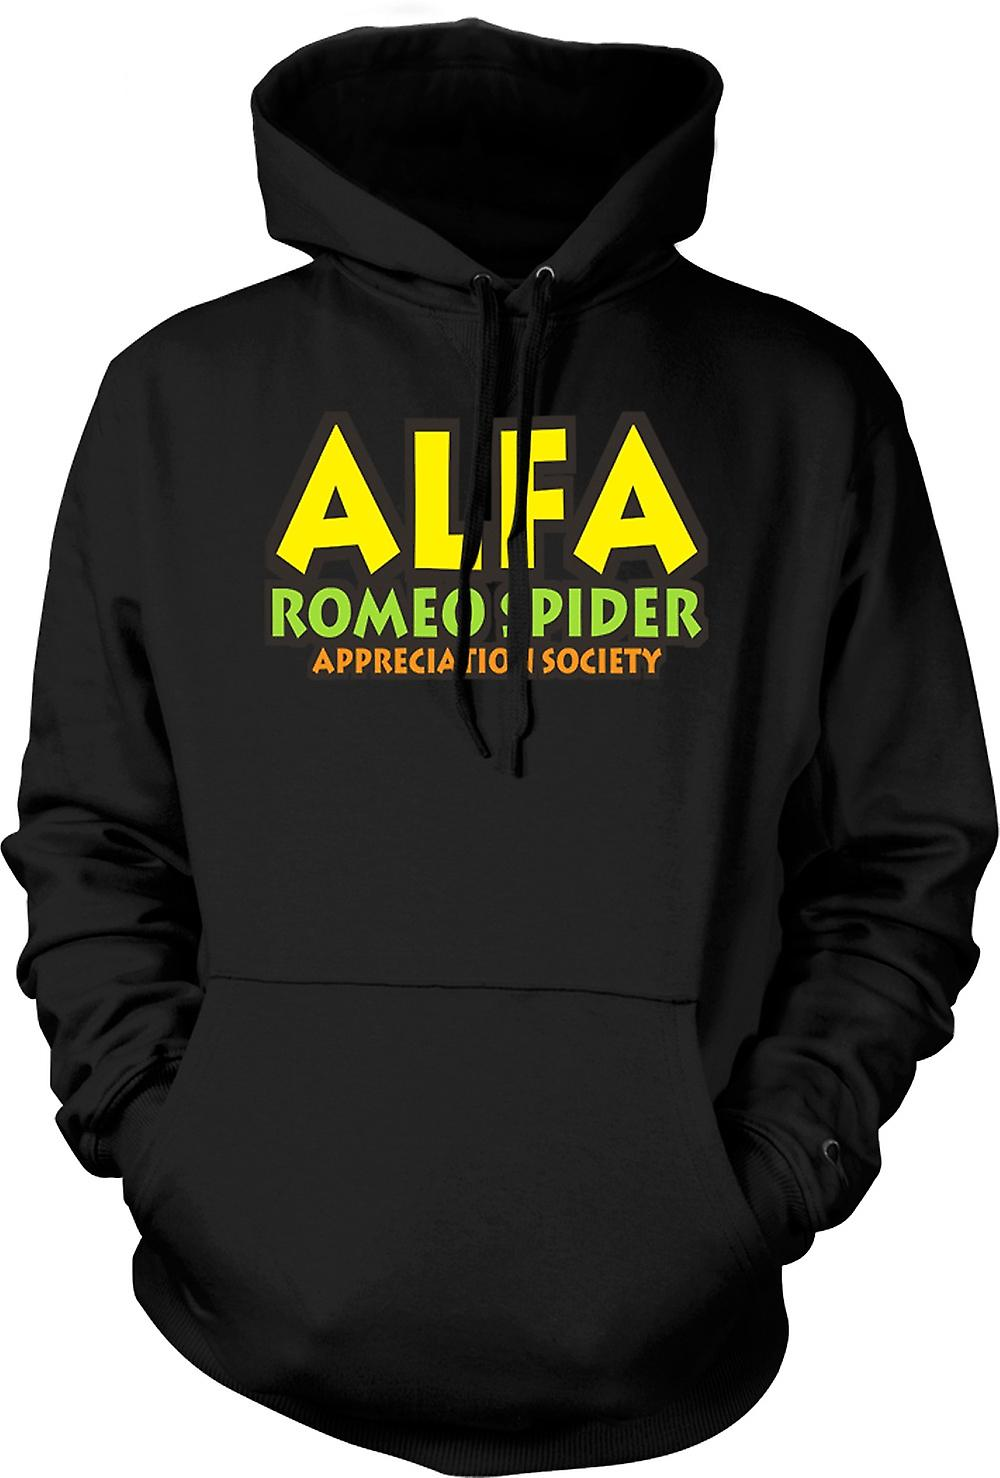 Mens Hoodie - Alfa Romeo Spider Appreciation Society